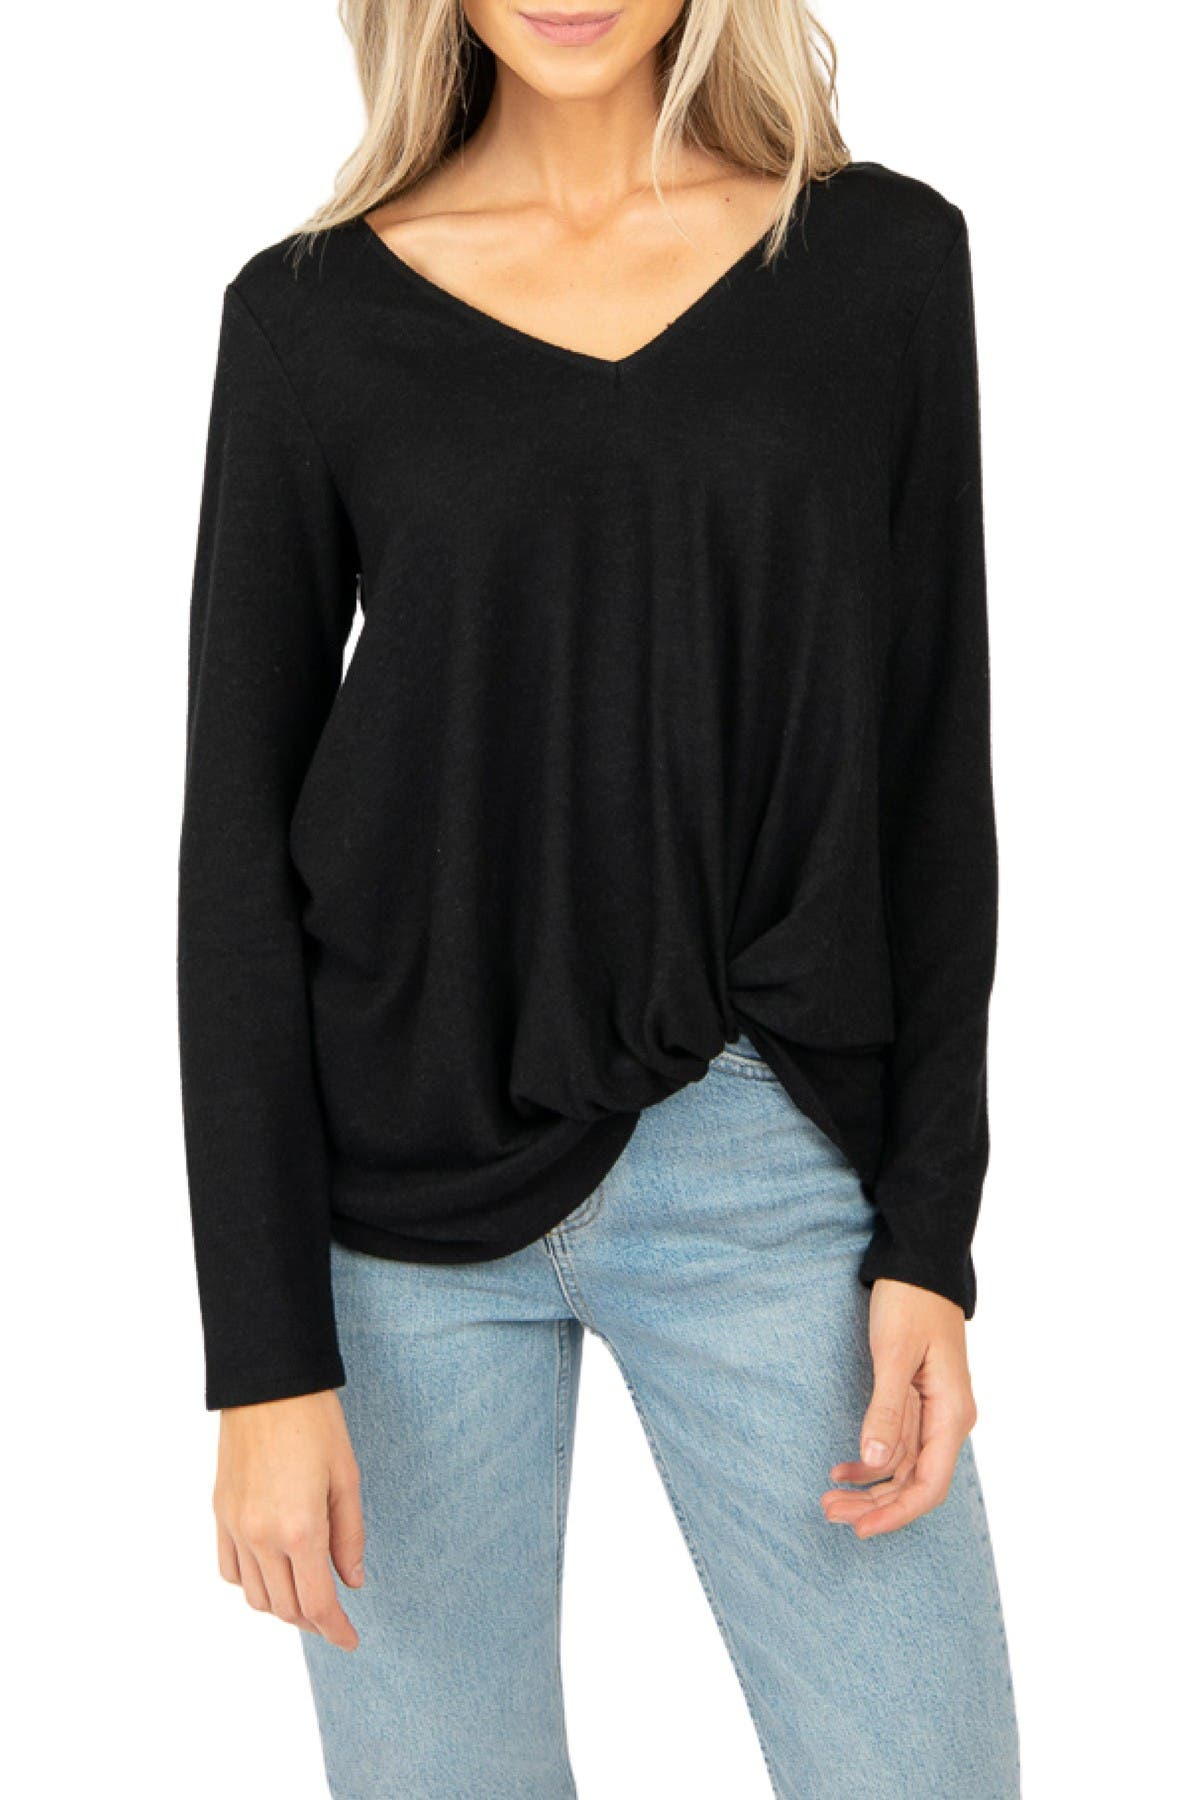 Image of Gibsonlook Cozy V-Neck Twisted Hem Top